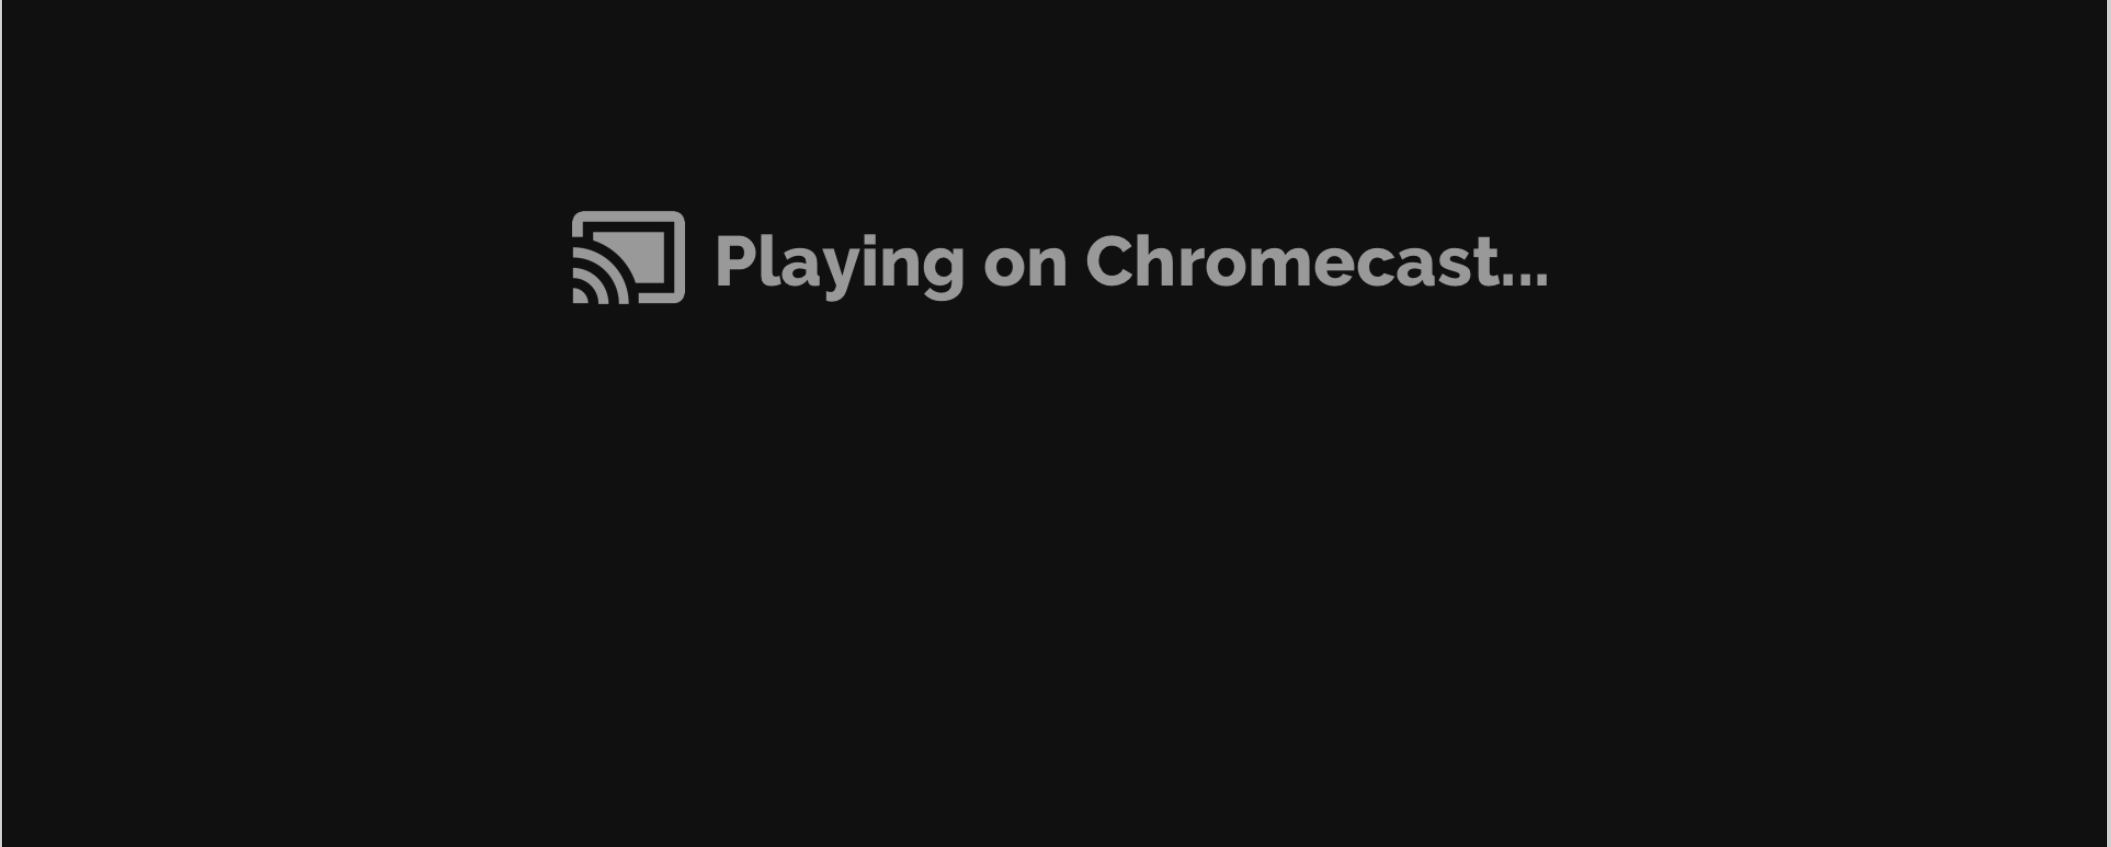 How to use Chromecast with the BoxCast Video Player